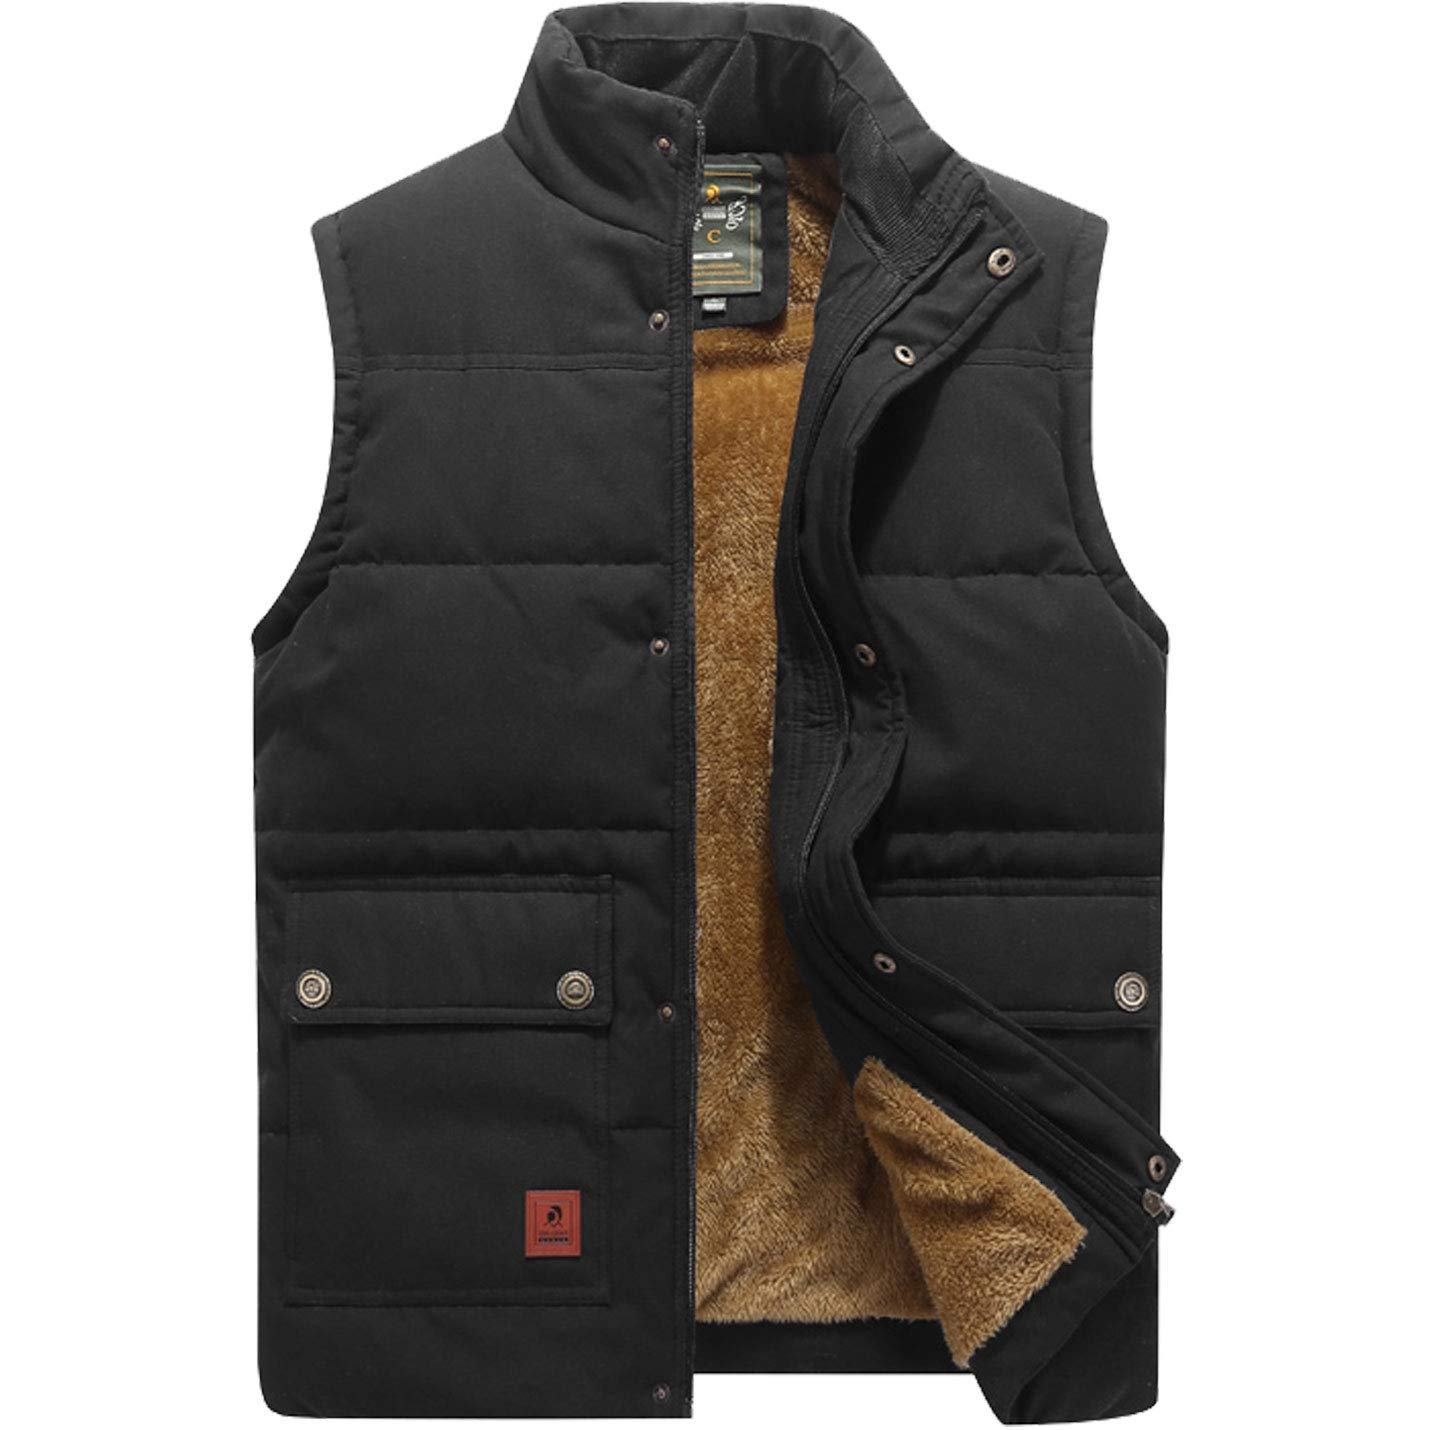 Flygo Men's Winter Warm Outdoor Padded Puffer Vest Thick Fleece Lined Sleeveless Jacket (Style 02 Black, X-Large) by Flygo